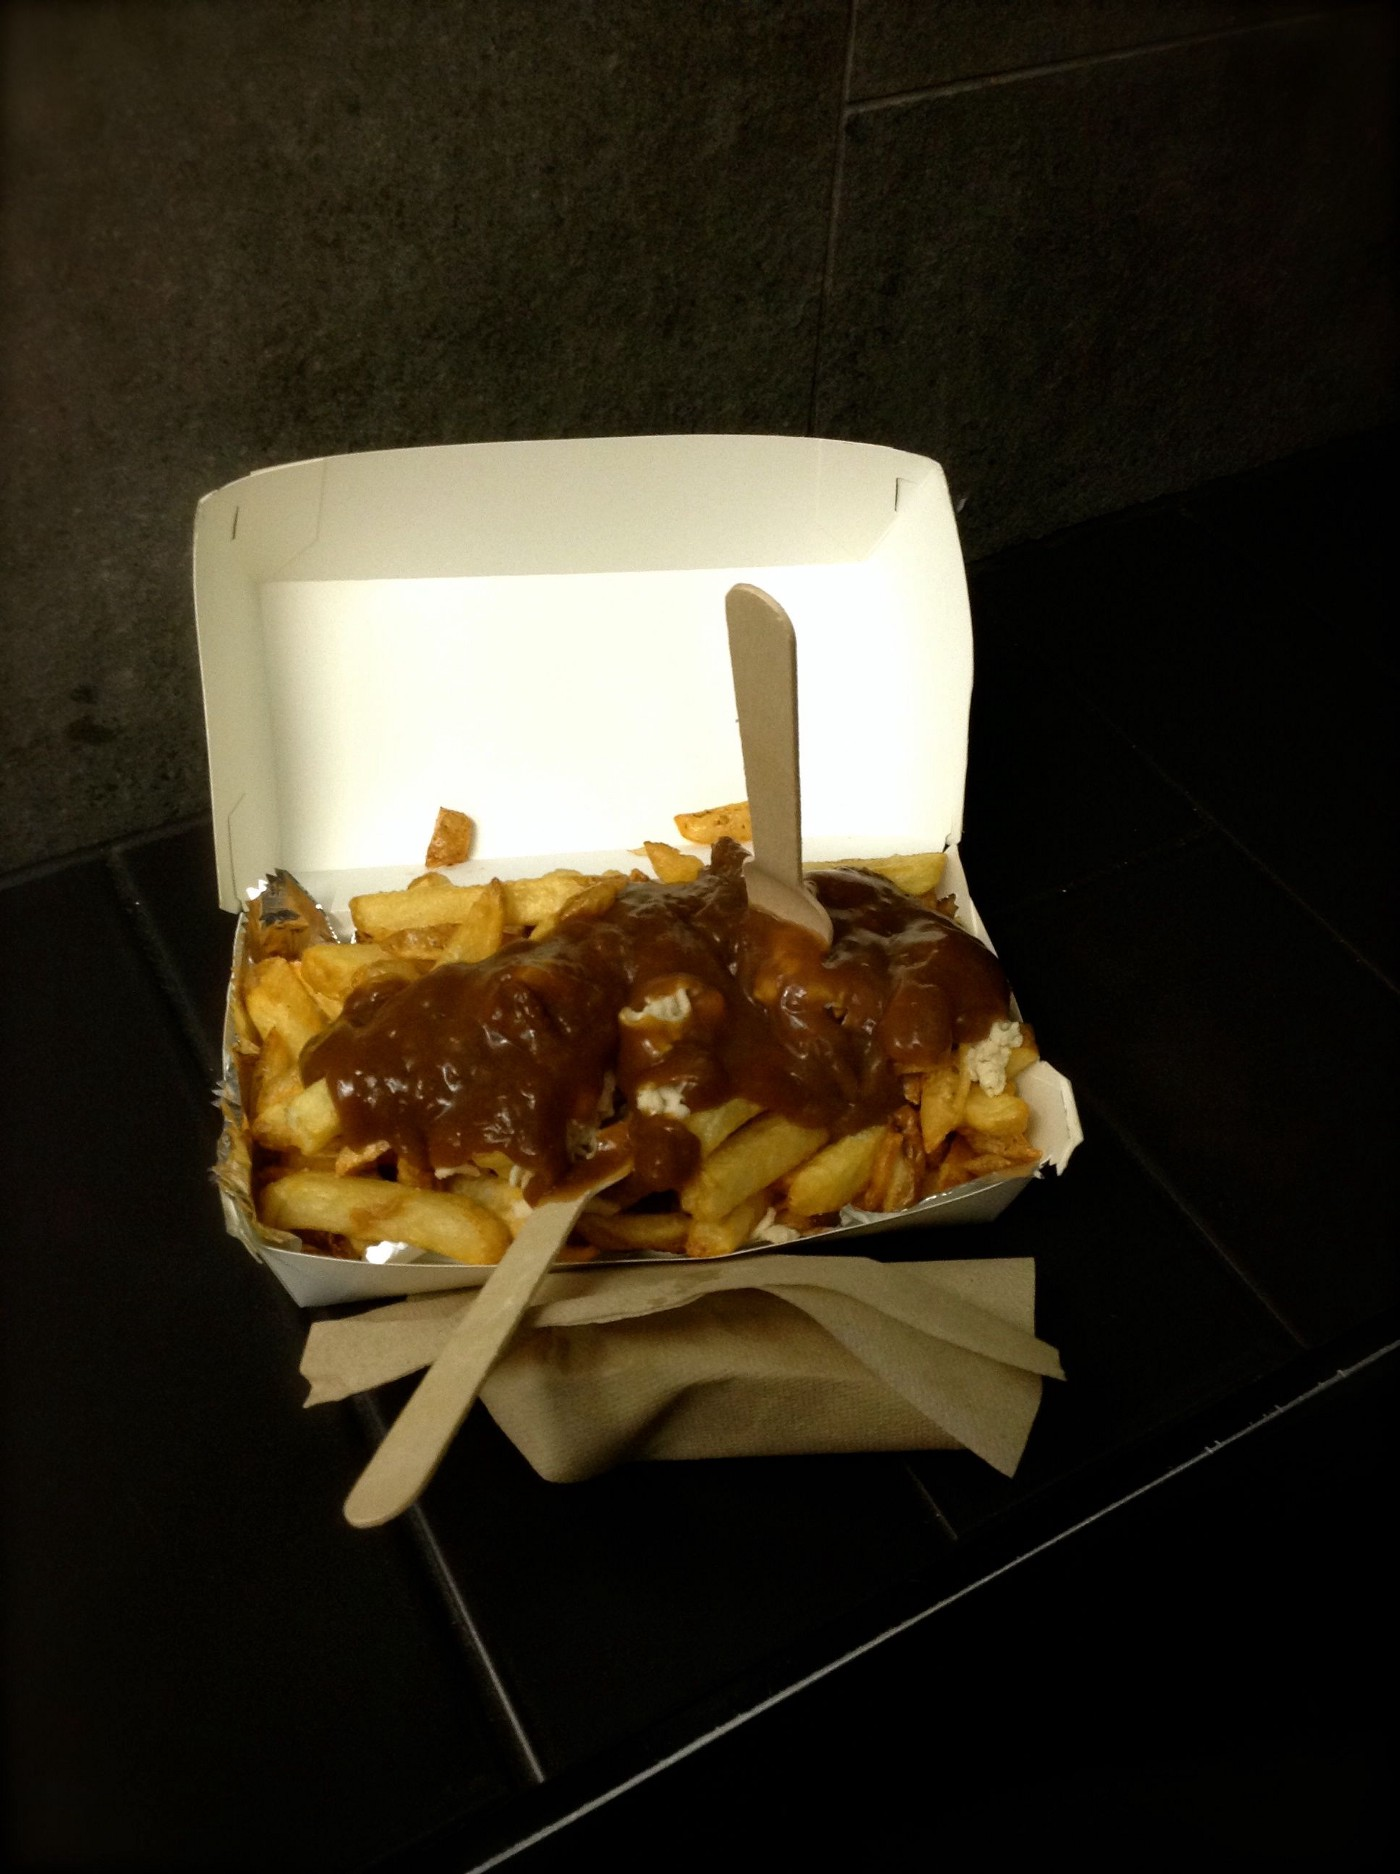 Lord of the Fries 'French Canadian Classic Fries' - Vegan cheese